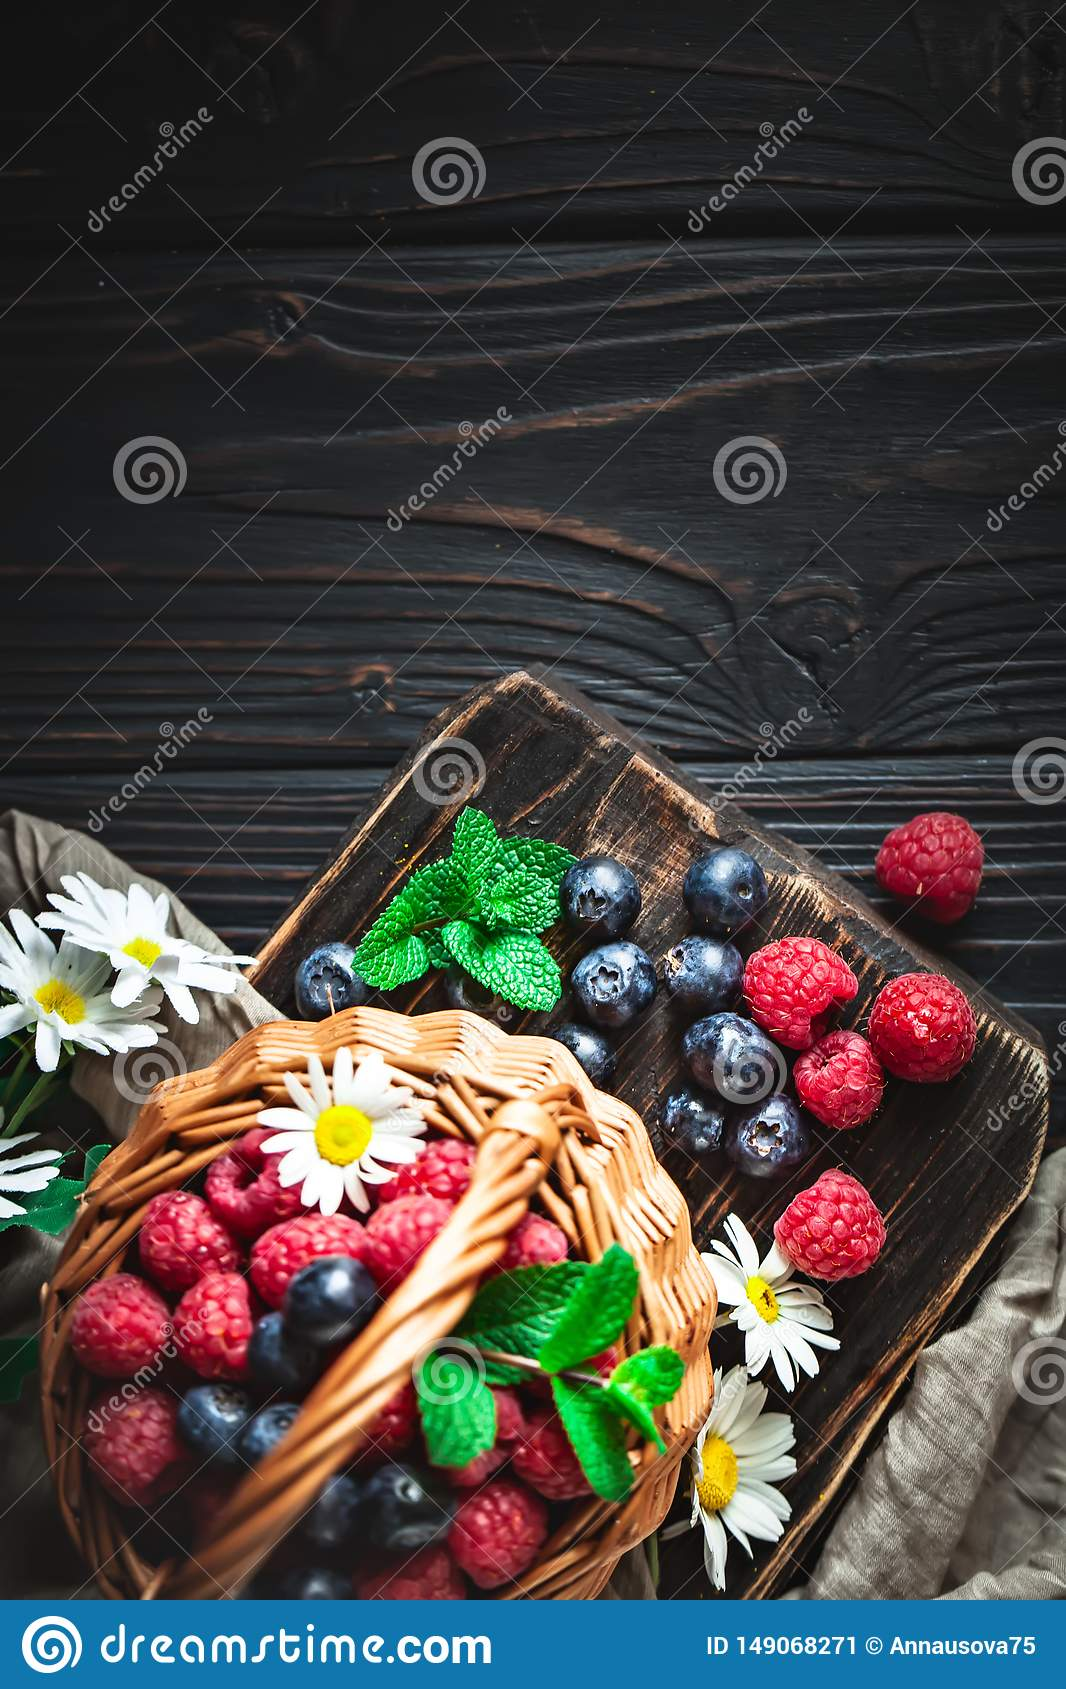 Raspberries and blueberries in a basket with chamomile and leaves on a dark background. Summer and healthy food concept